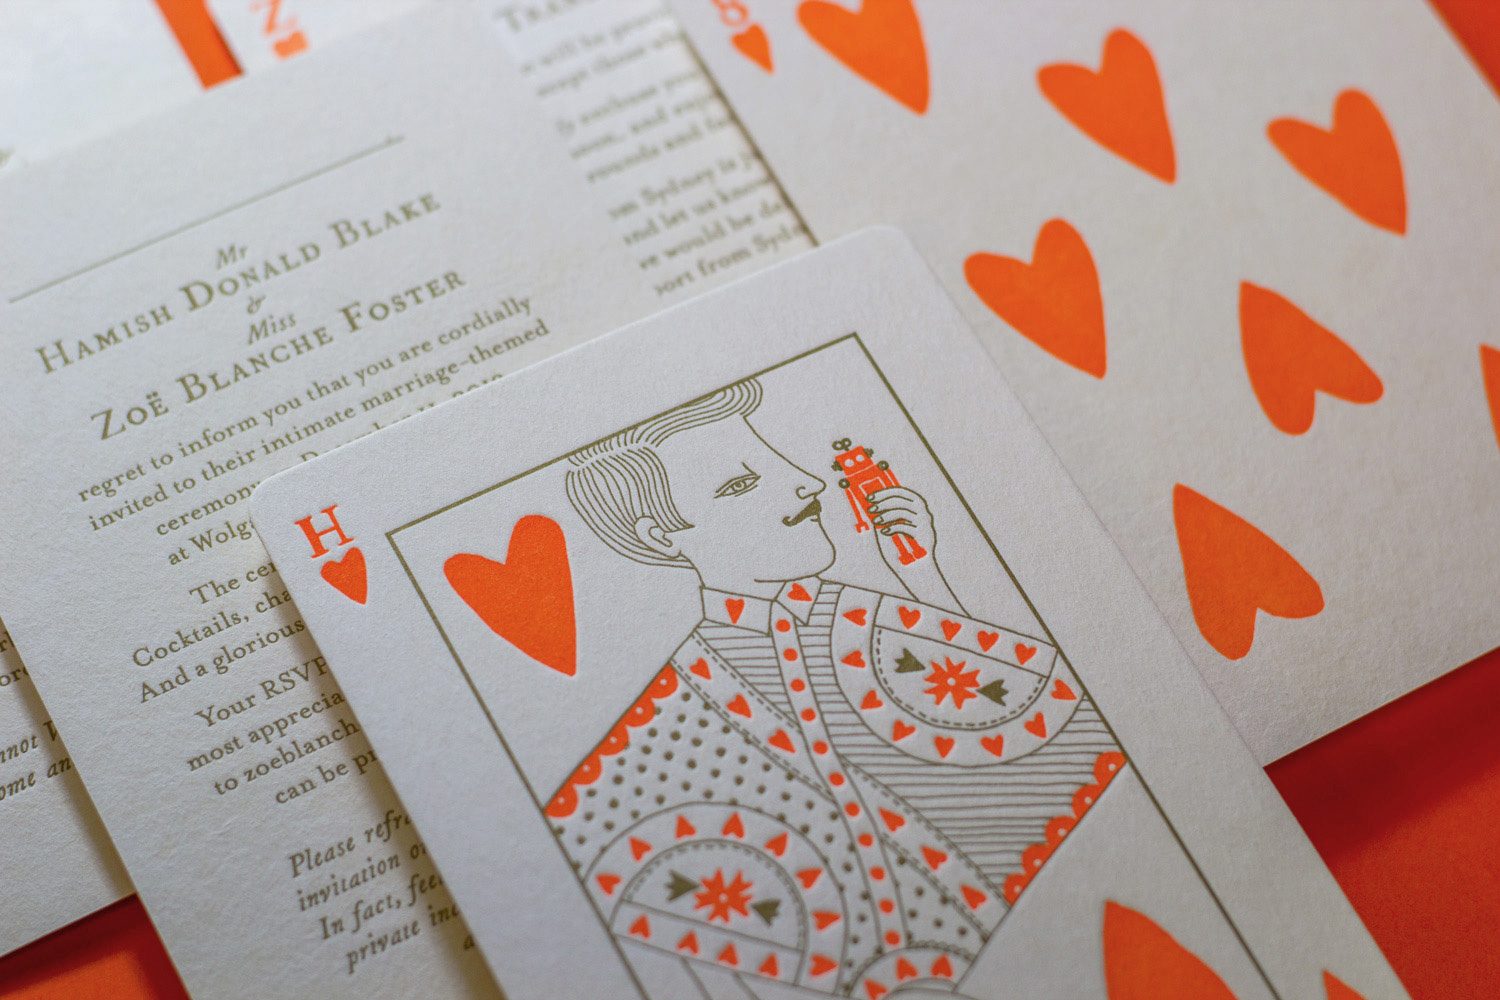 Unique letterpress wedding invitations for Hamish Blake and Zoe Foster-Blake illustrated by Allison Colpoys 1